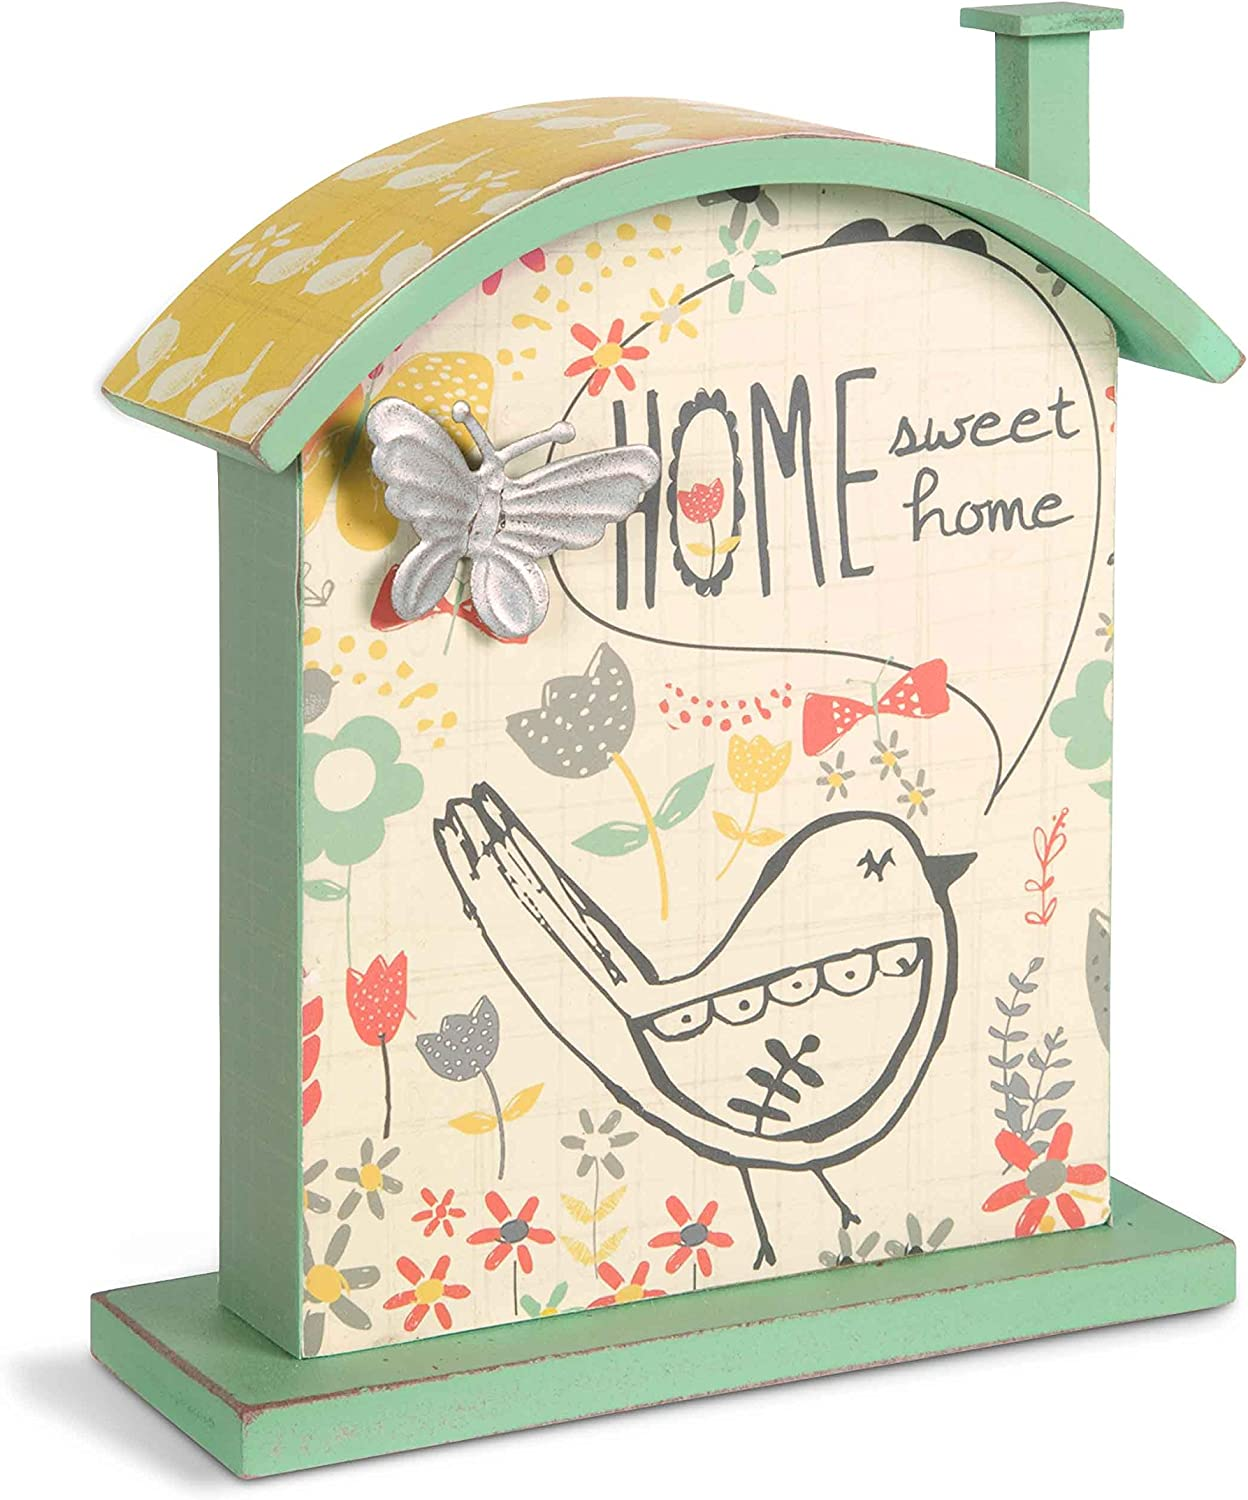 Pavilion Gift Company 74017 Home Sweet Home Self-Standing House Plaque, 7""